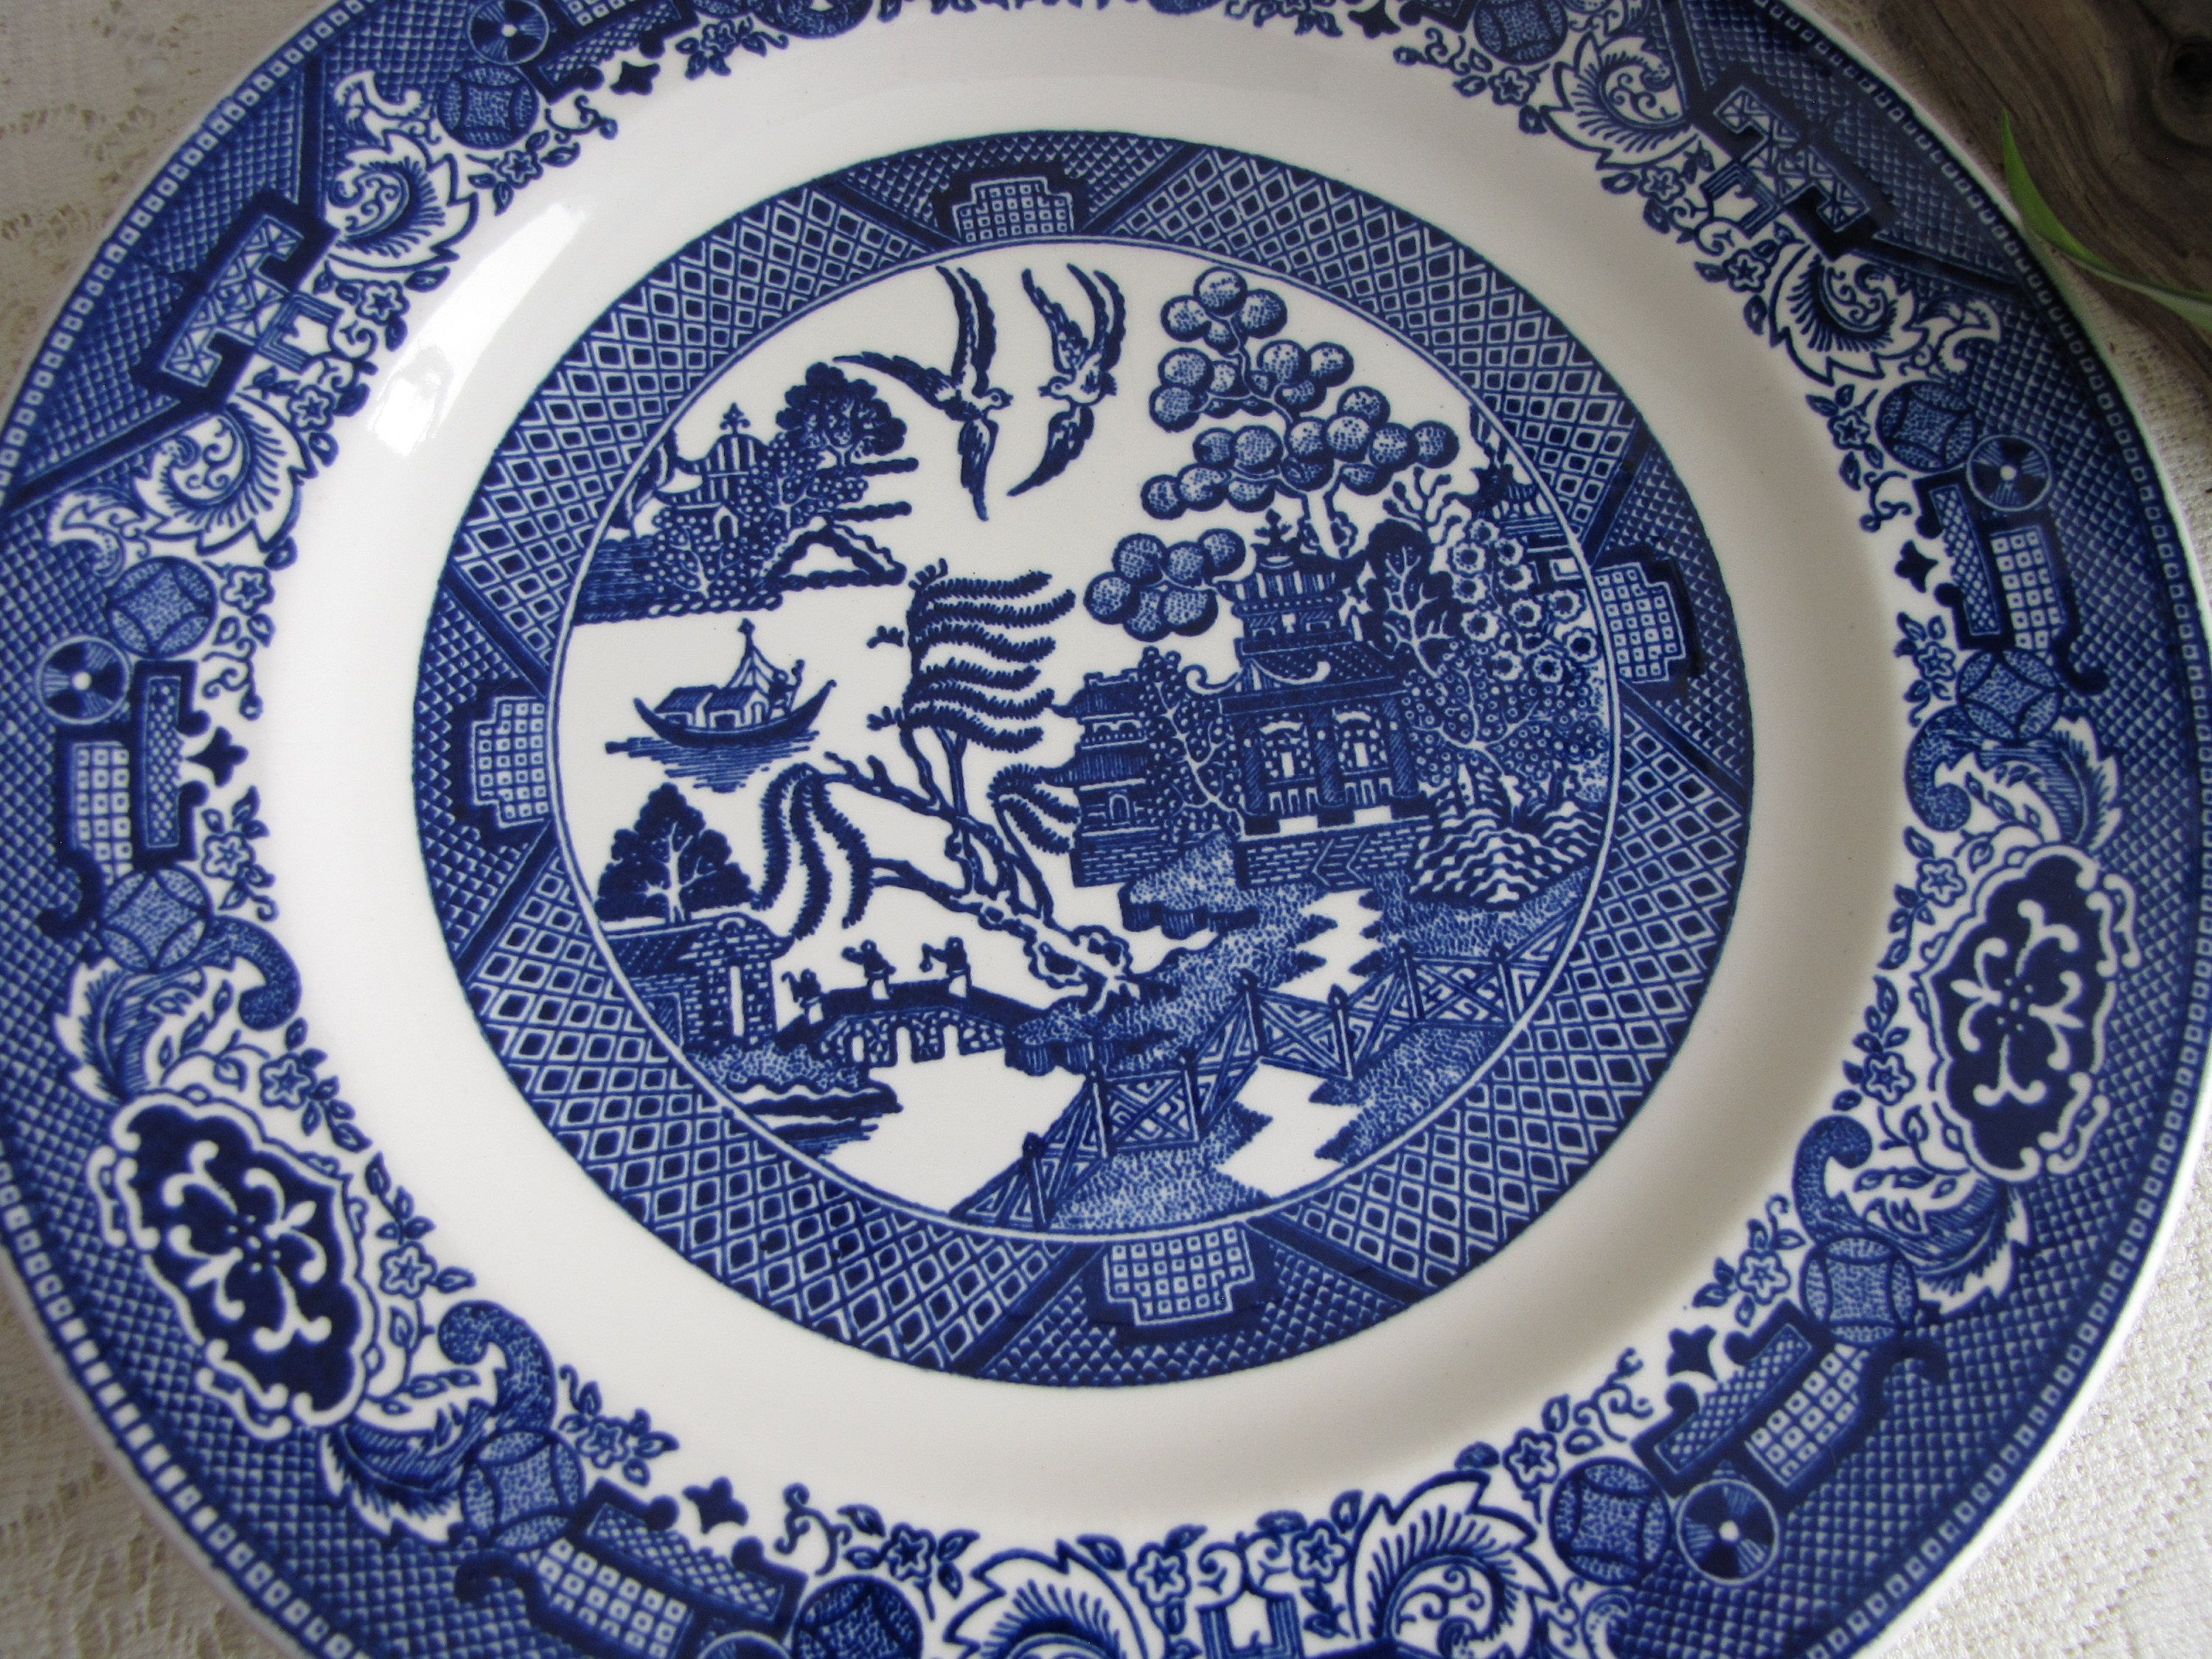 Blue Willow Dinner Plates Royal China Set of Five (5) Vintage Dinnerware and Replacements & Blue Willow Dinner Plates Royal China Set of Five (5) Vintage ...